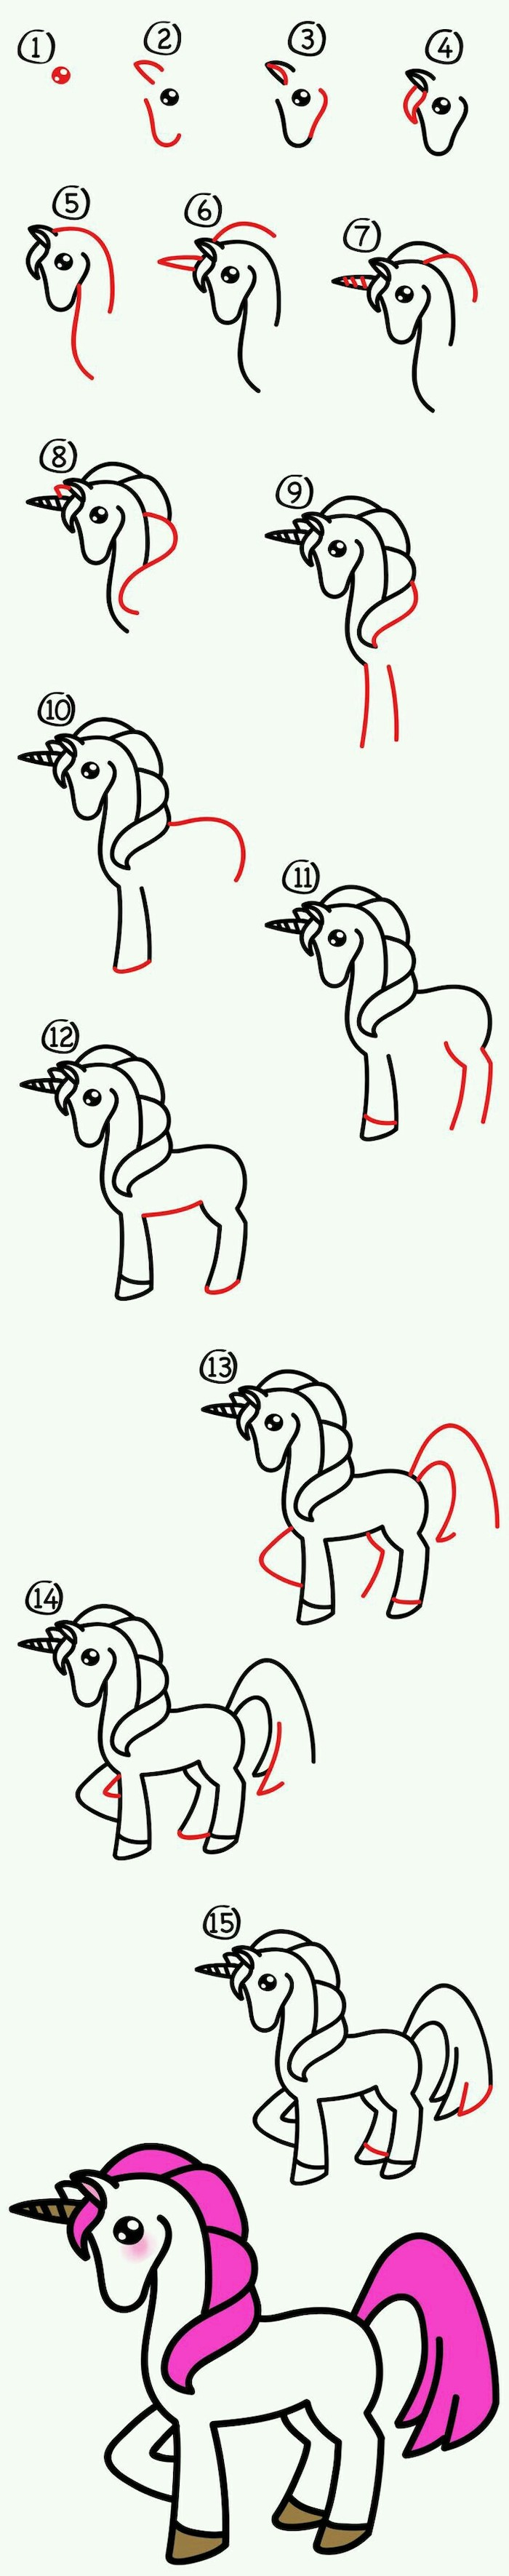 how to draw a unicorn, cute and easy drawings, step by step diy tutorial, white background